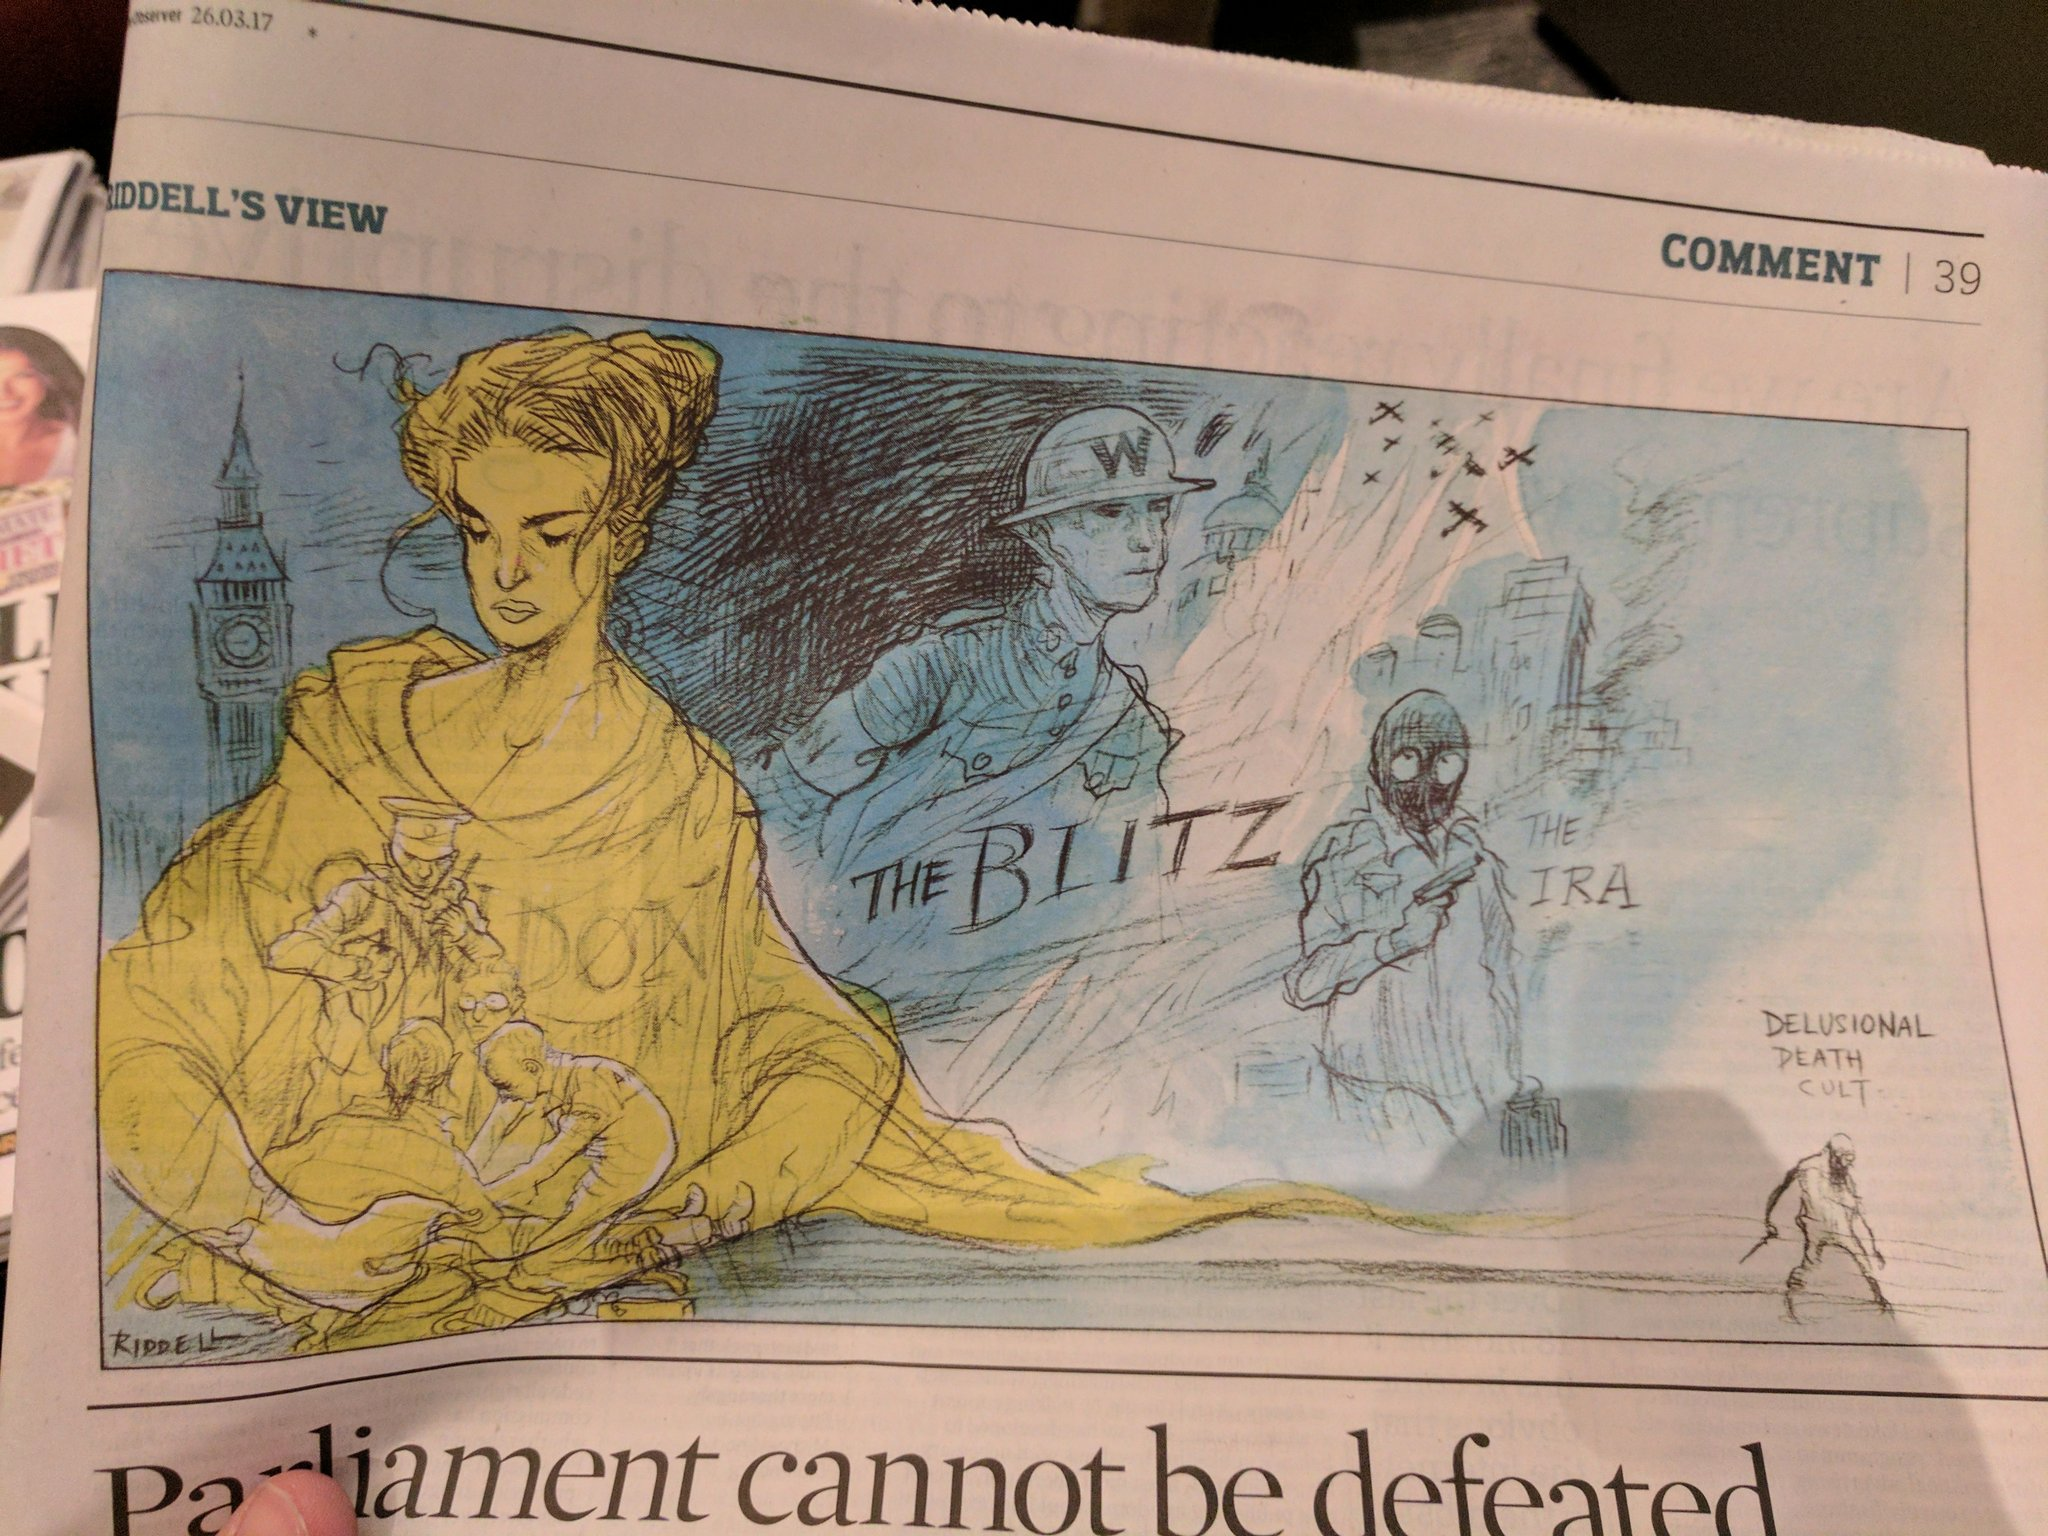 Lovely cartoon in the Observer today. https://t.co/Fr4EnJ6LtN